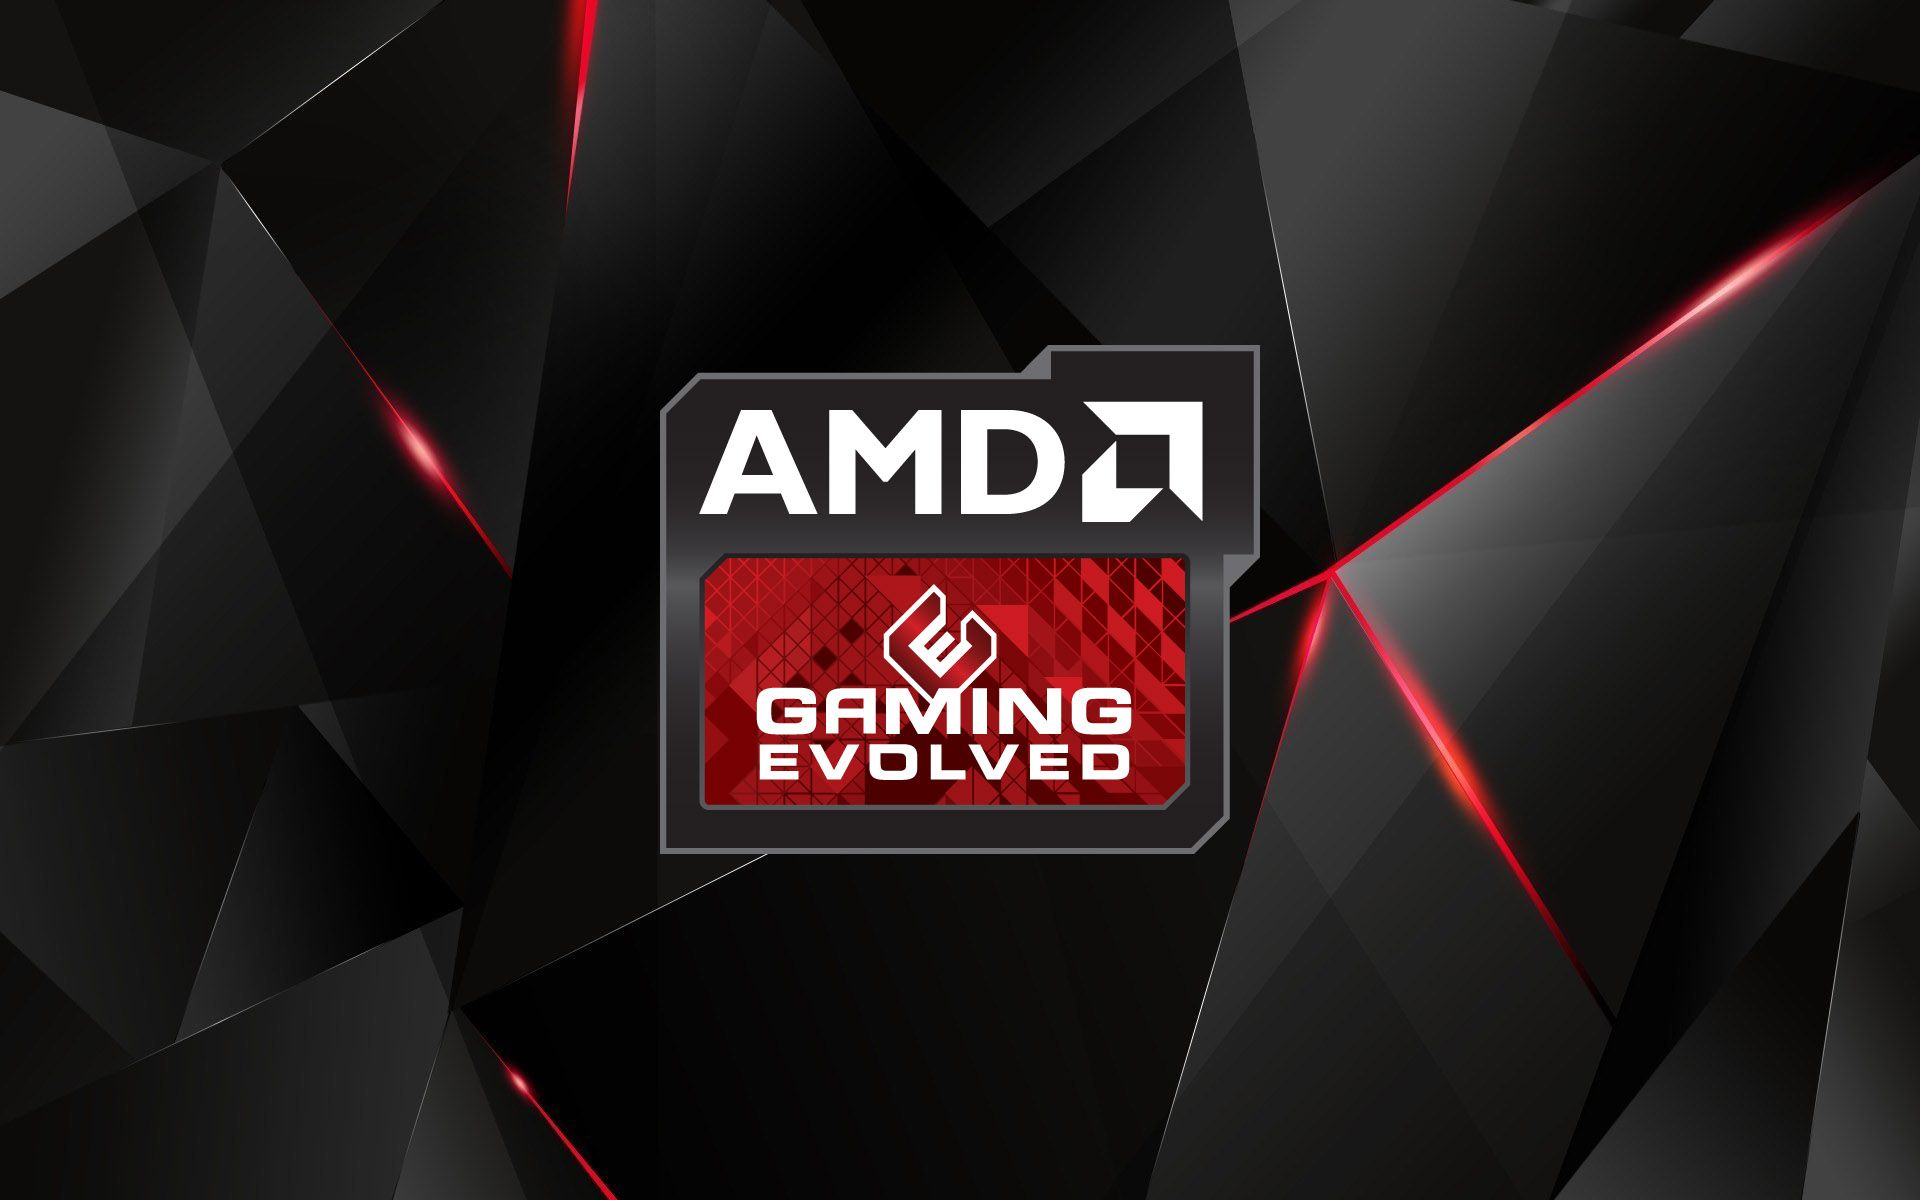 AMD Wallpapers - Wallpaper Cave